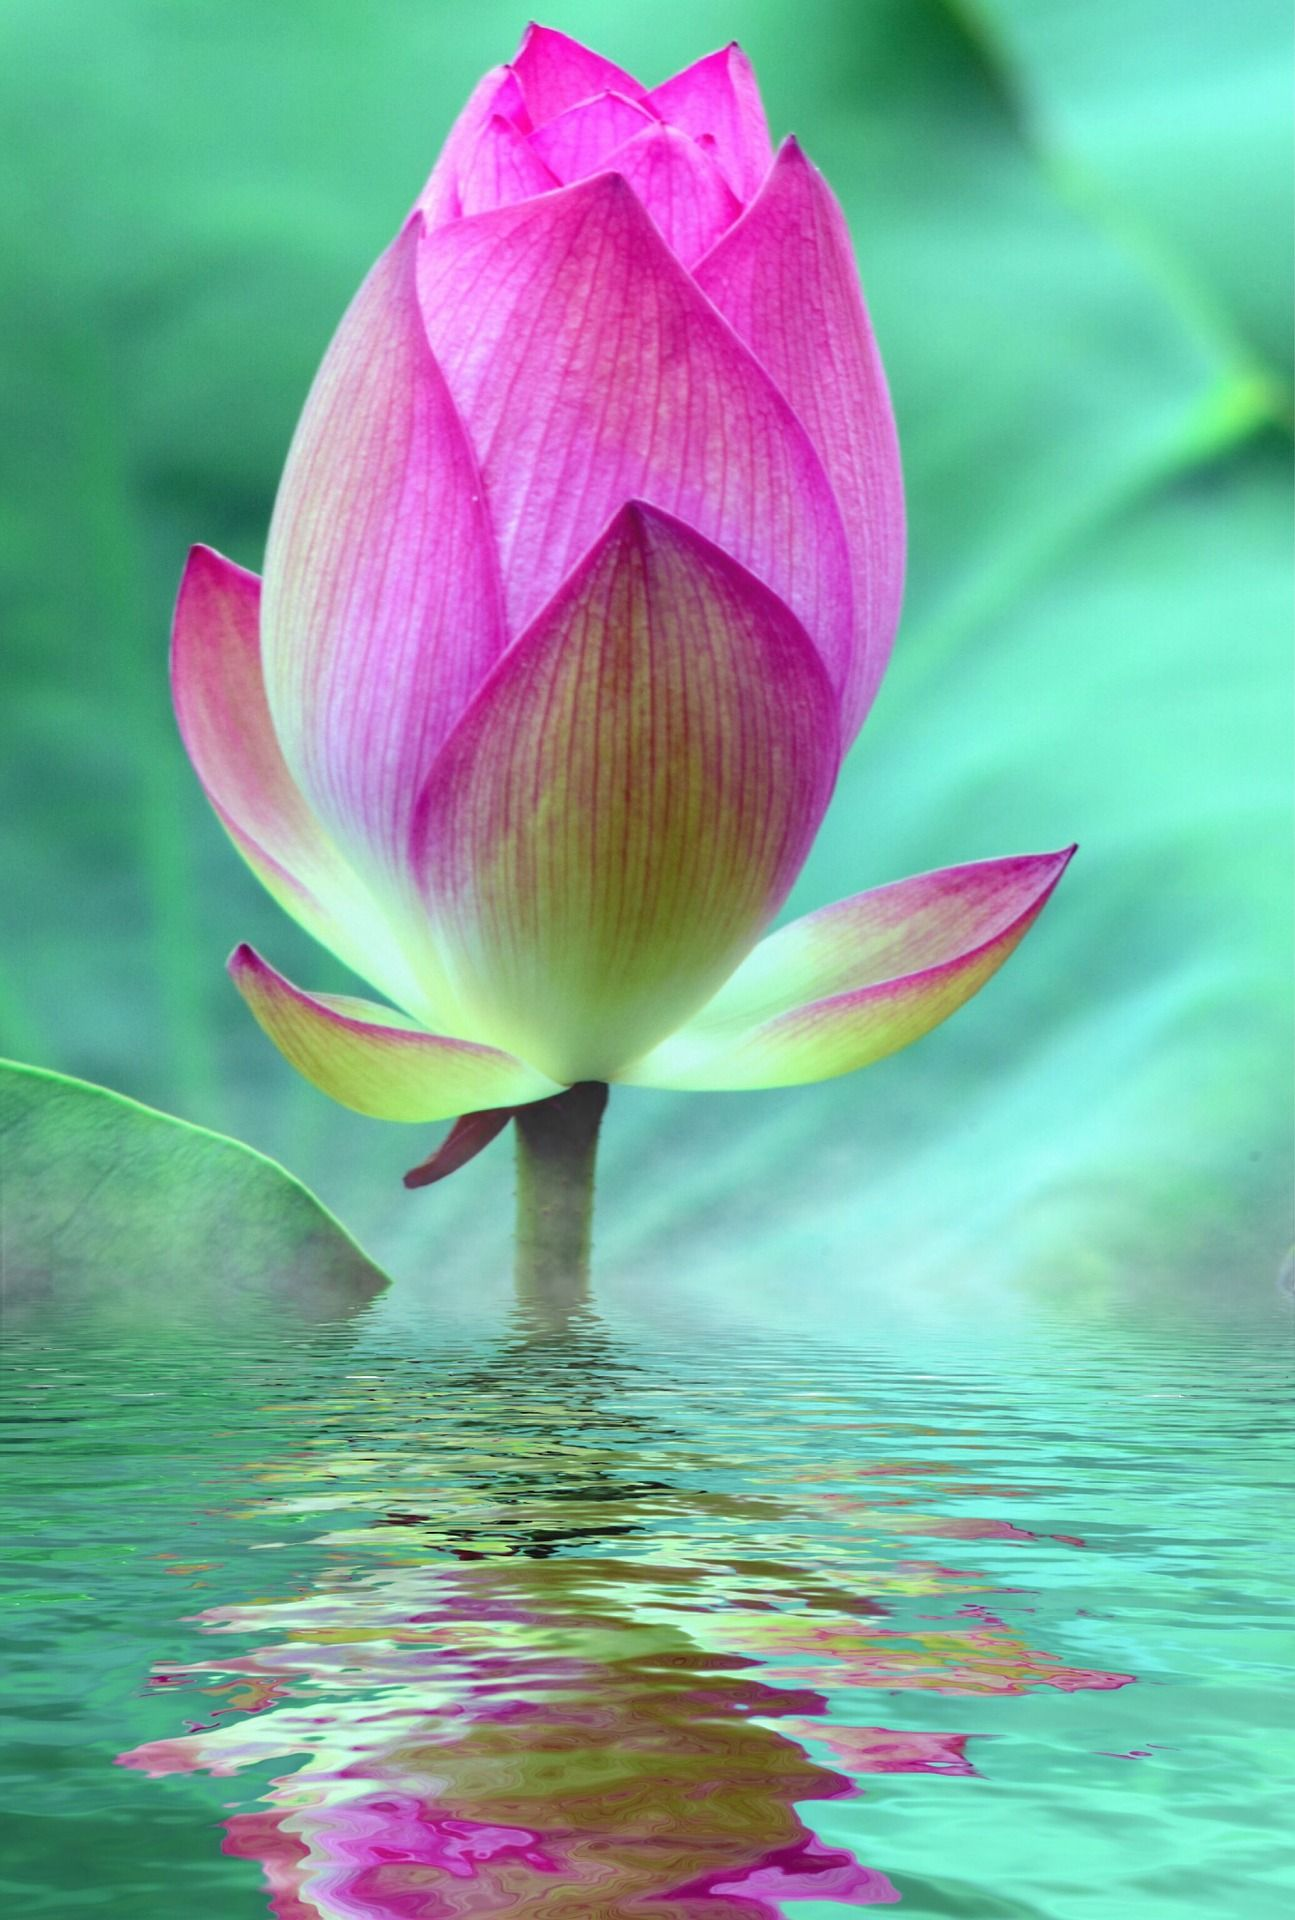 lotus-2573625_1920 hot pink vertical Pixabay 031221